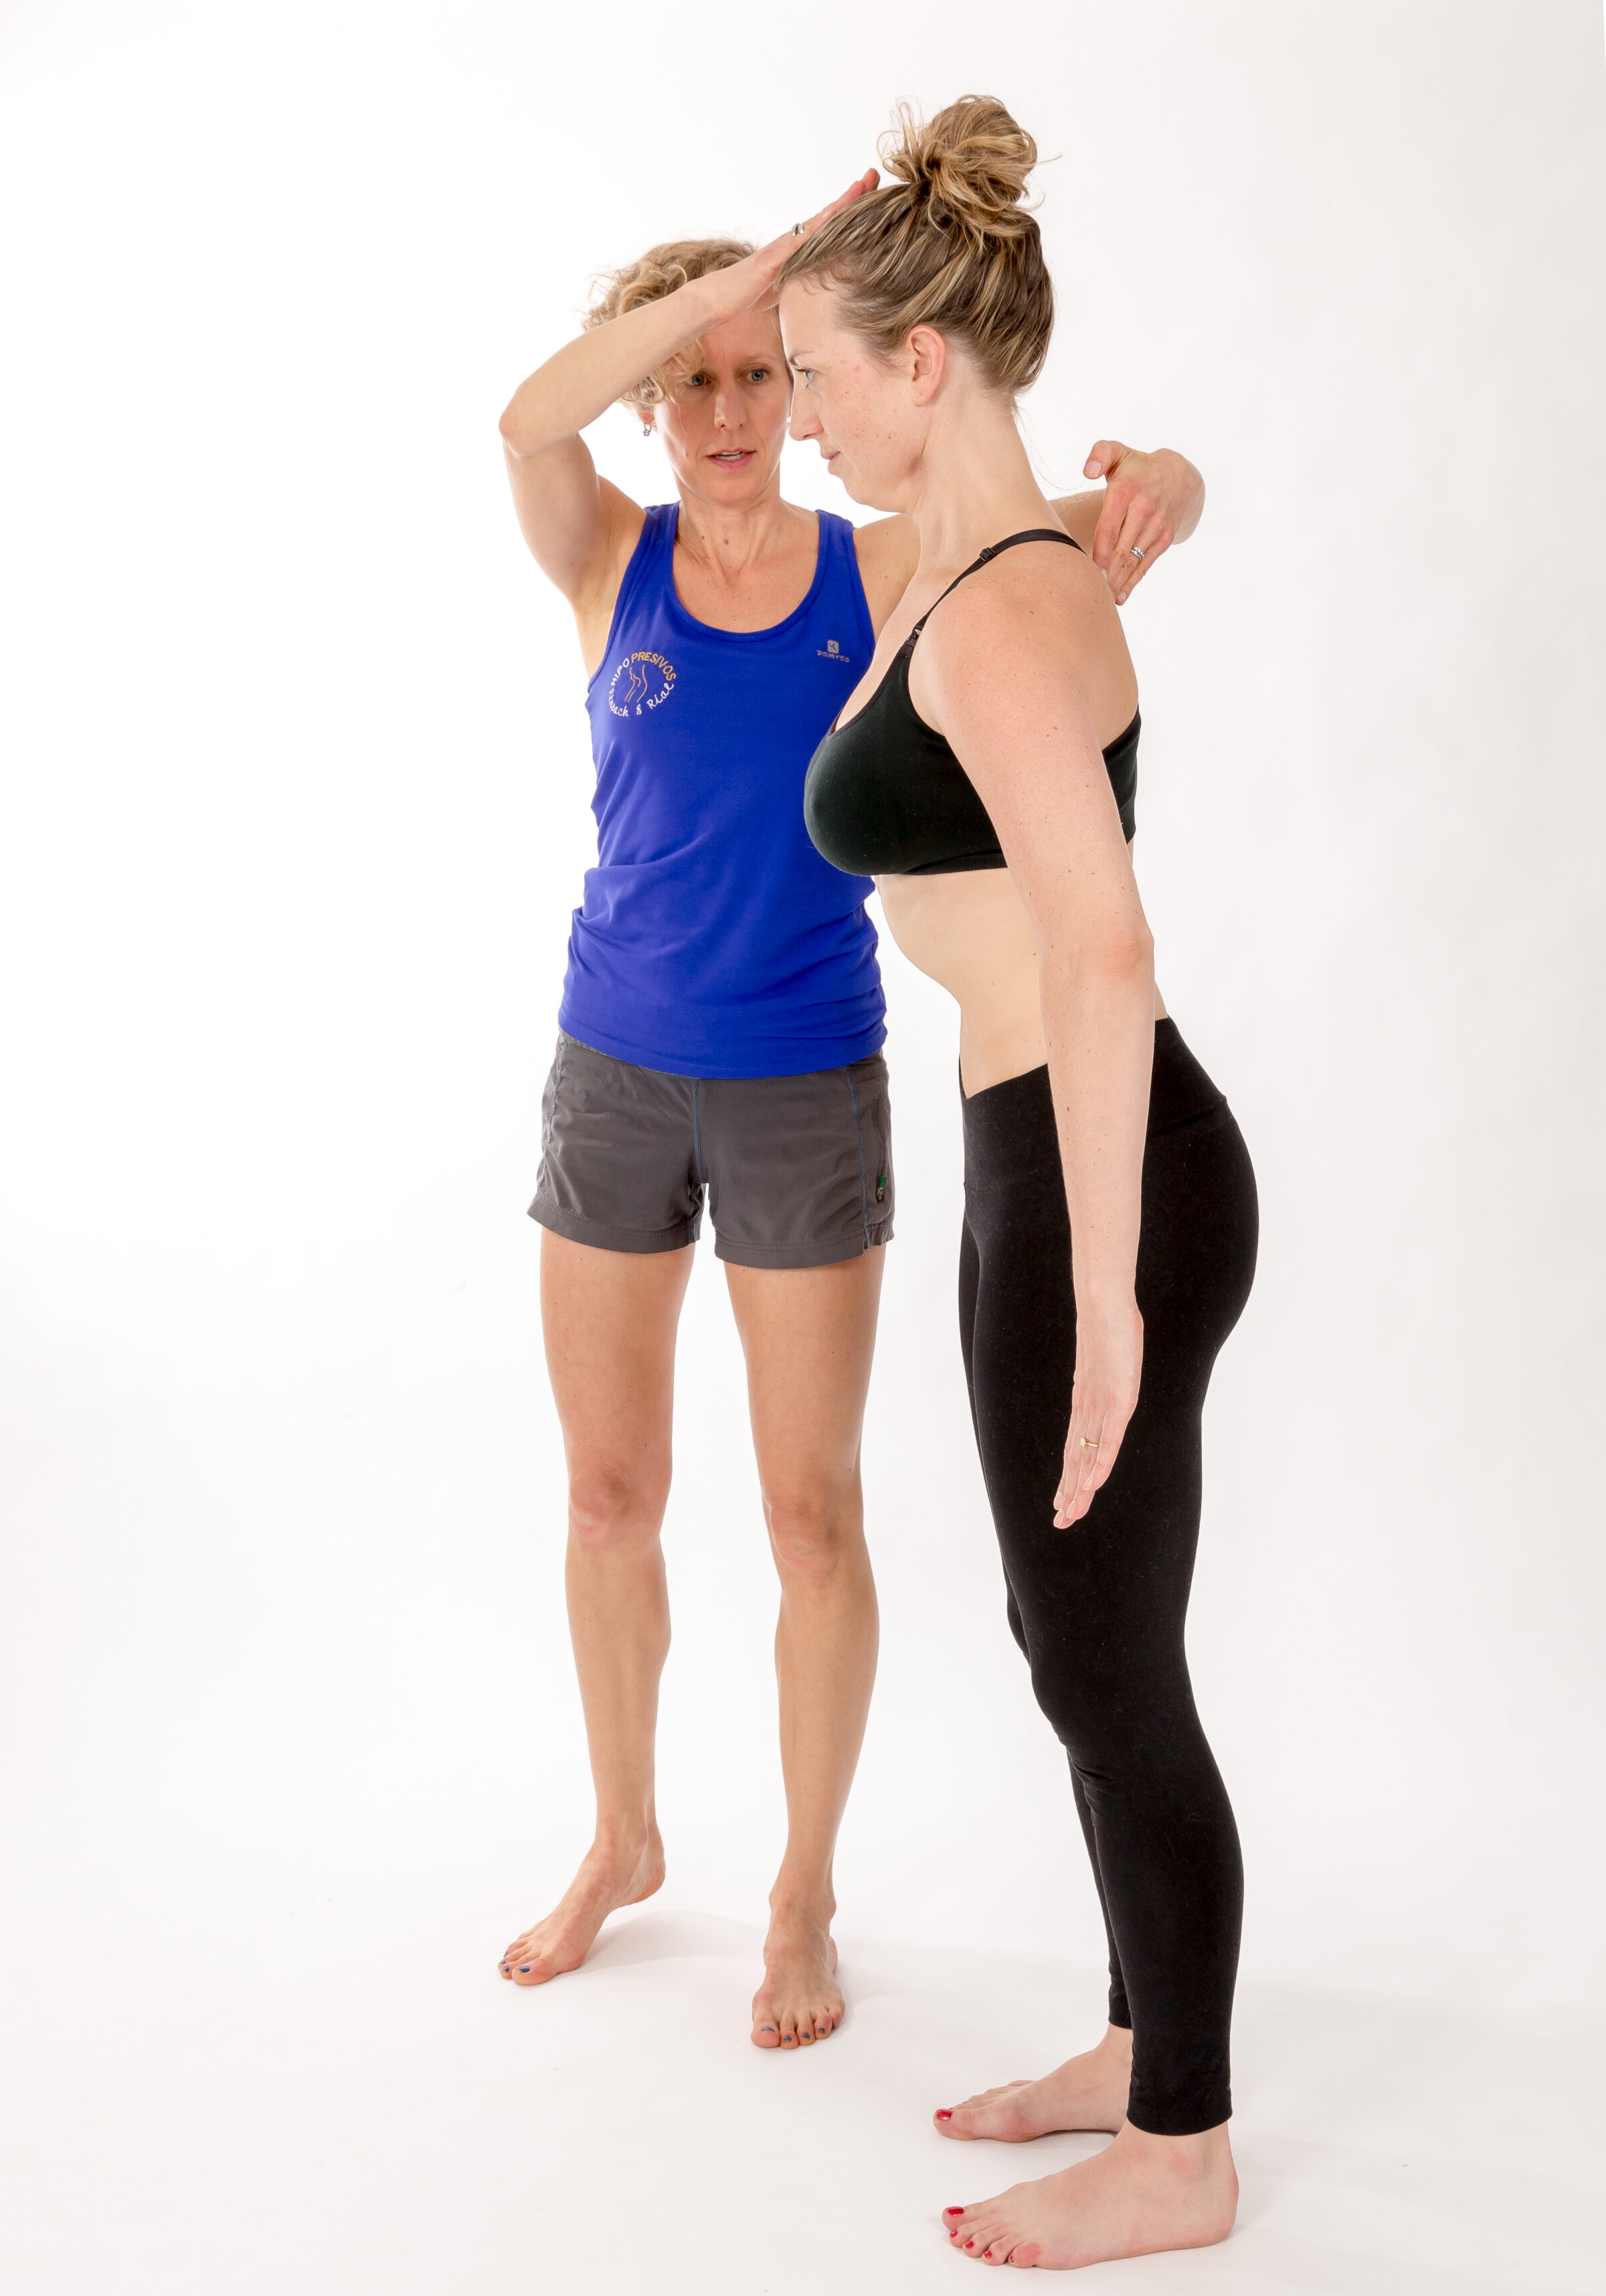 hypopressive training, pelvic floor health, core restoration